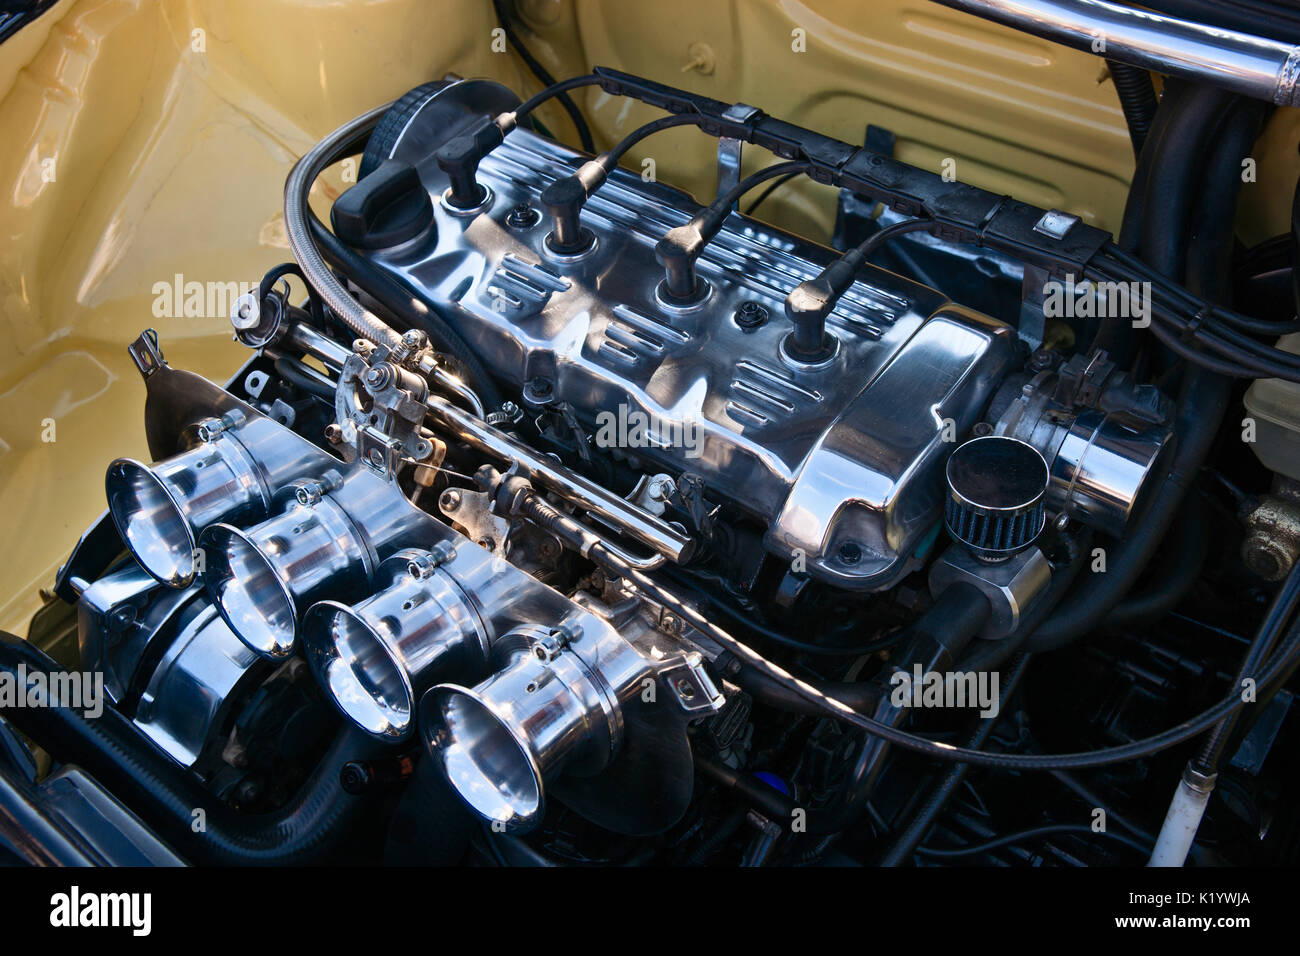 Modern automobile internal-combustion engine. White polished metal and black tubes and wires. Automotive industry Stock Photo